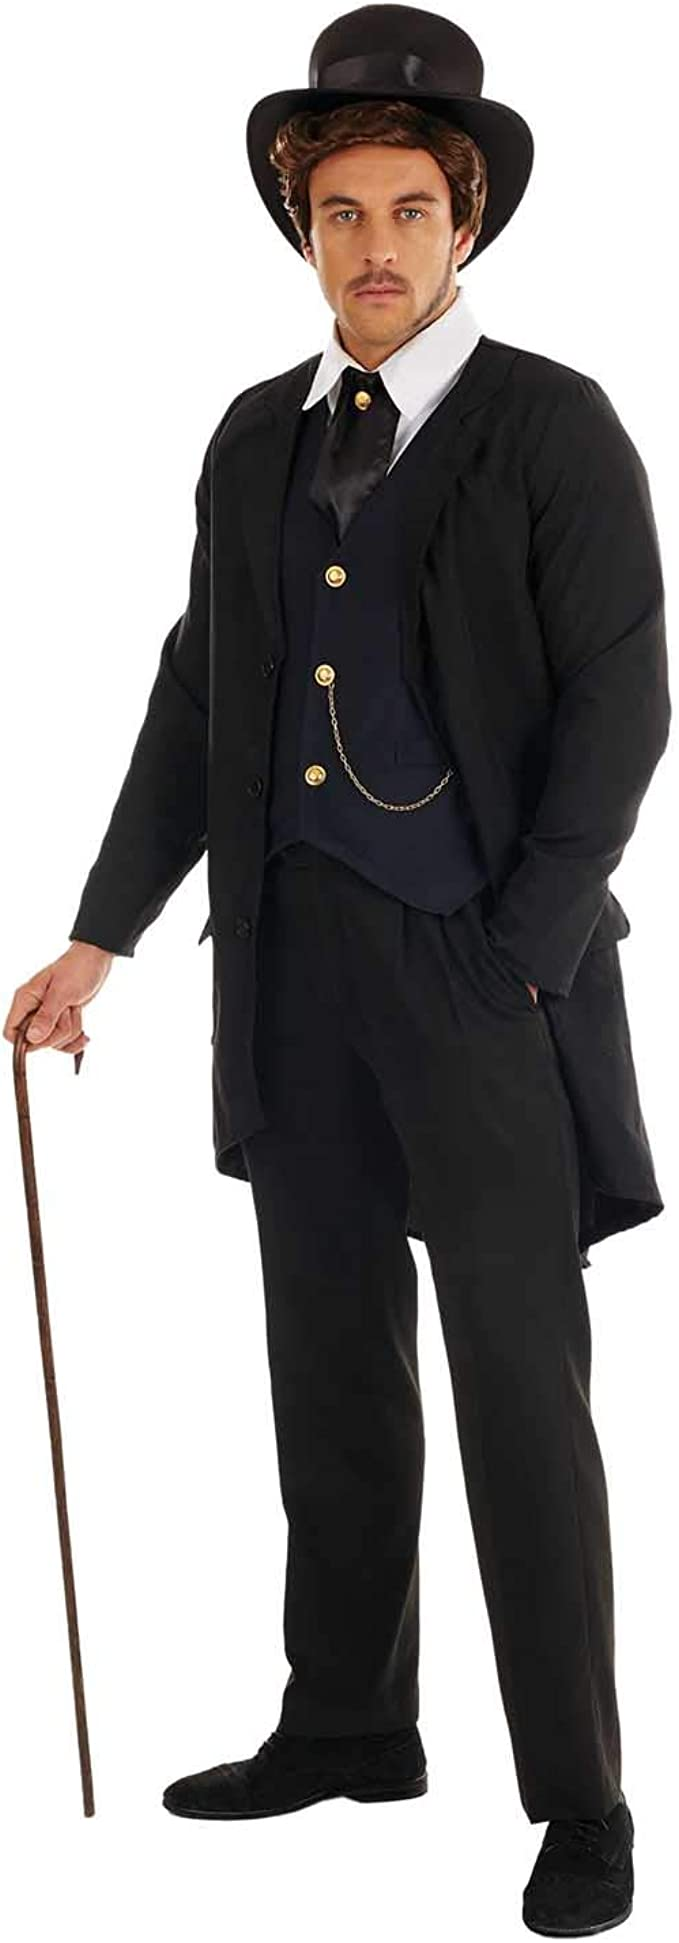 Victorian Men's Costumes: Mad Hatter, Rhet Butler, Willy Wonka Adult Victorian Man Fancy Dress Costume £24.49 AT vintagedancer.com